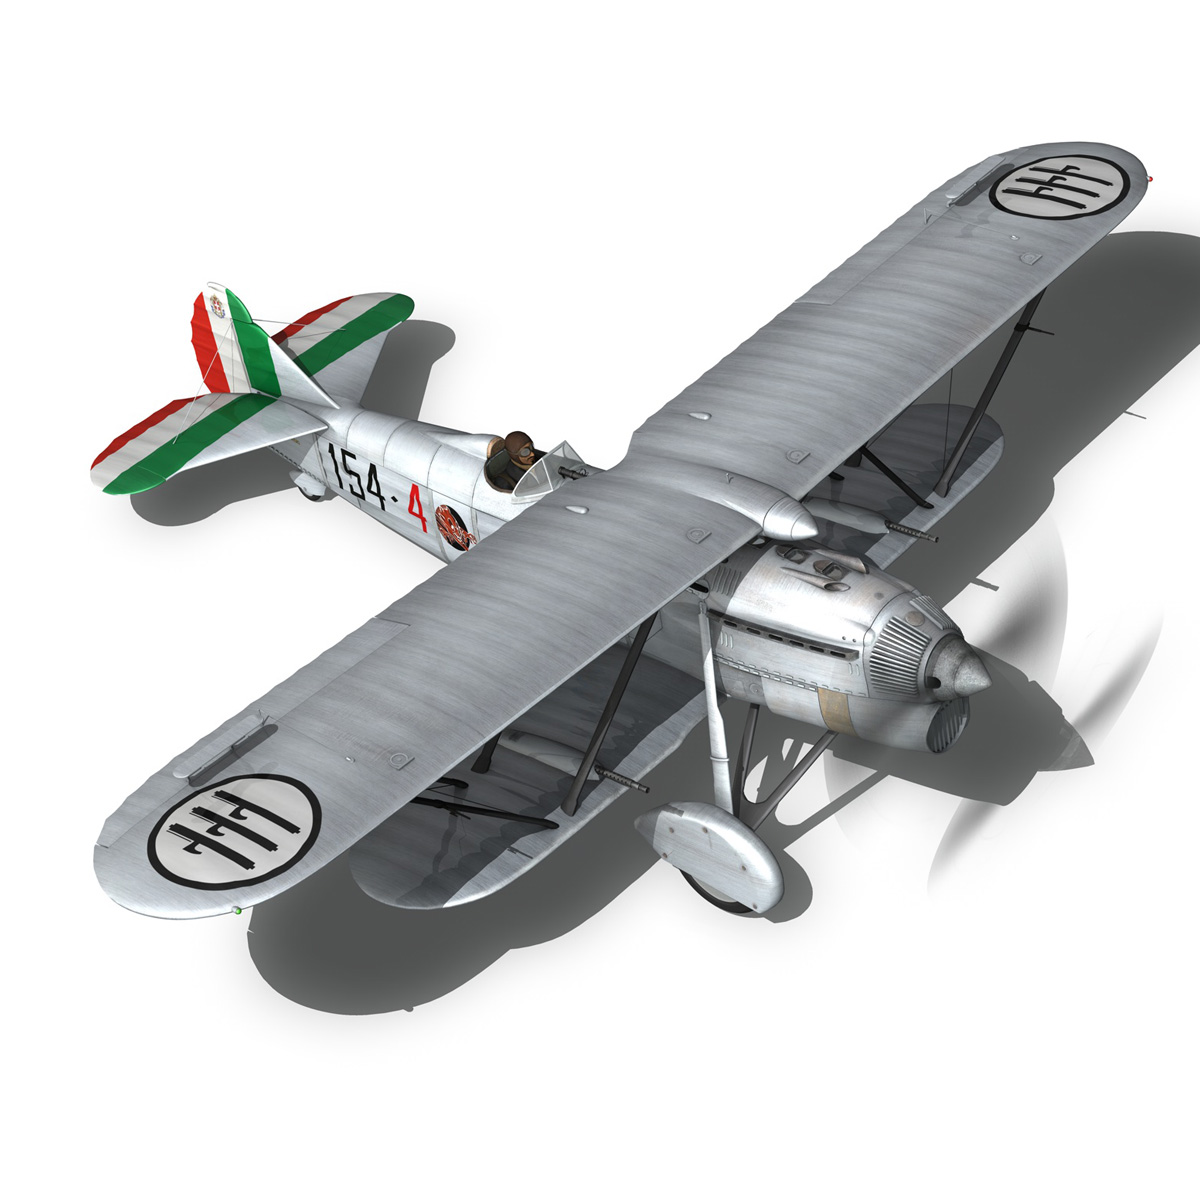 fiat cr.32 – italy airforce – 154 squadriglia 3d model fbx c4d lwo obj 268142